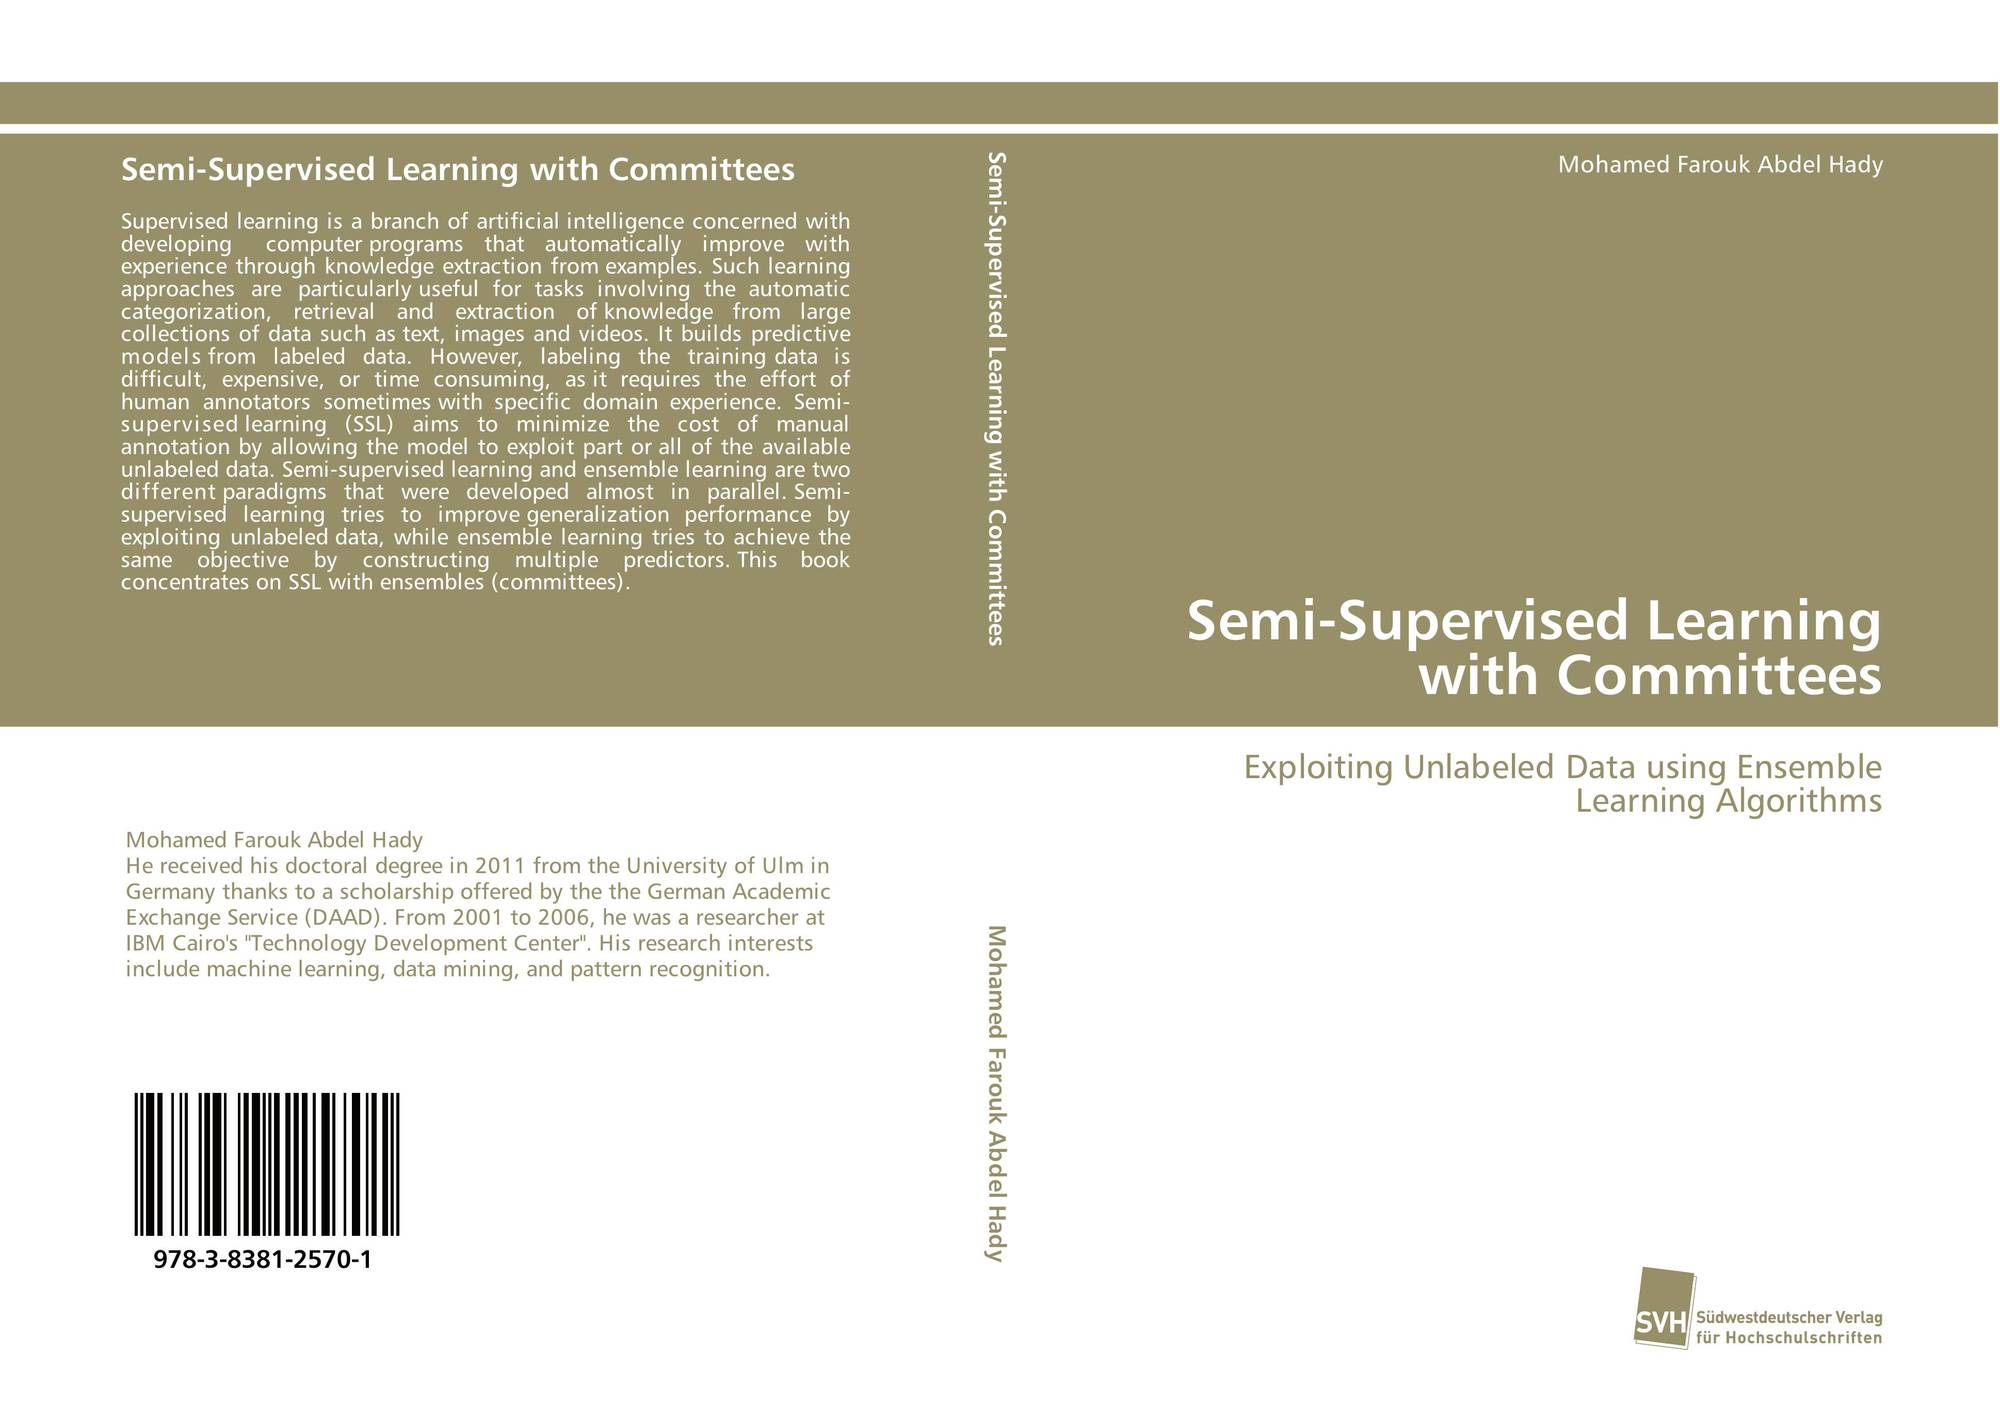 Semi-Supervised Learning with Committees, 978-3-8381-2570-1